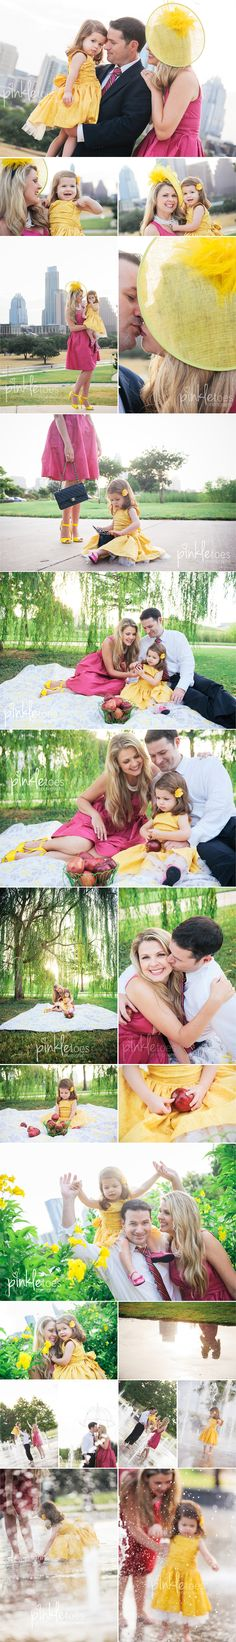 My sweetest friend and famed interior designer in Austin always puts together the most fabulous outfits for family photos! The photographer is pretty glamorous herself!  These just make me smile!    -austin-urban-lifestyle-toddler-family-modern-best-photographer